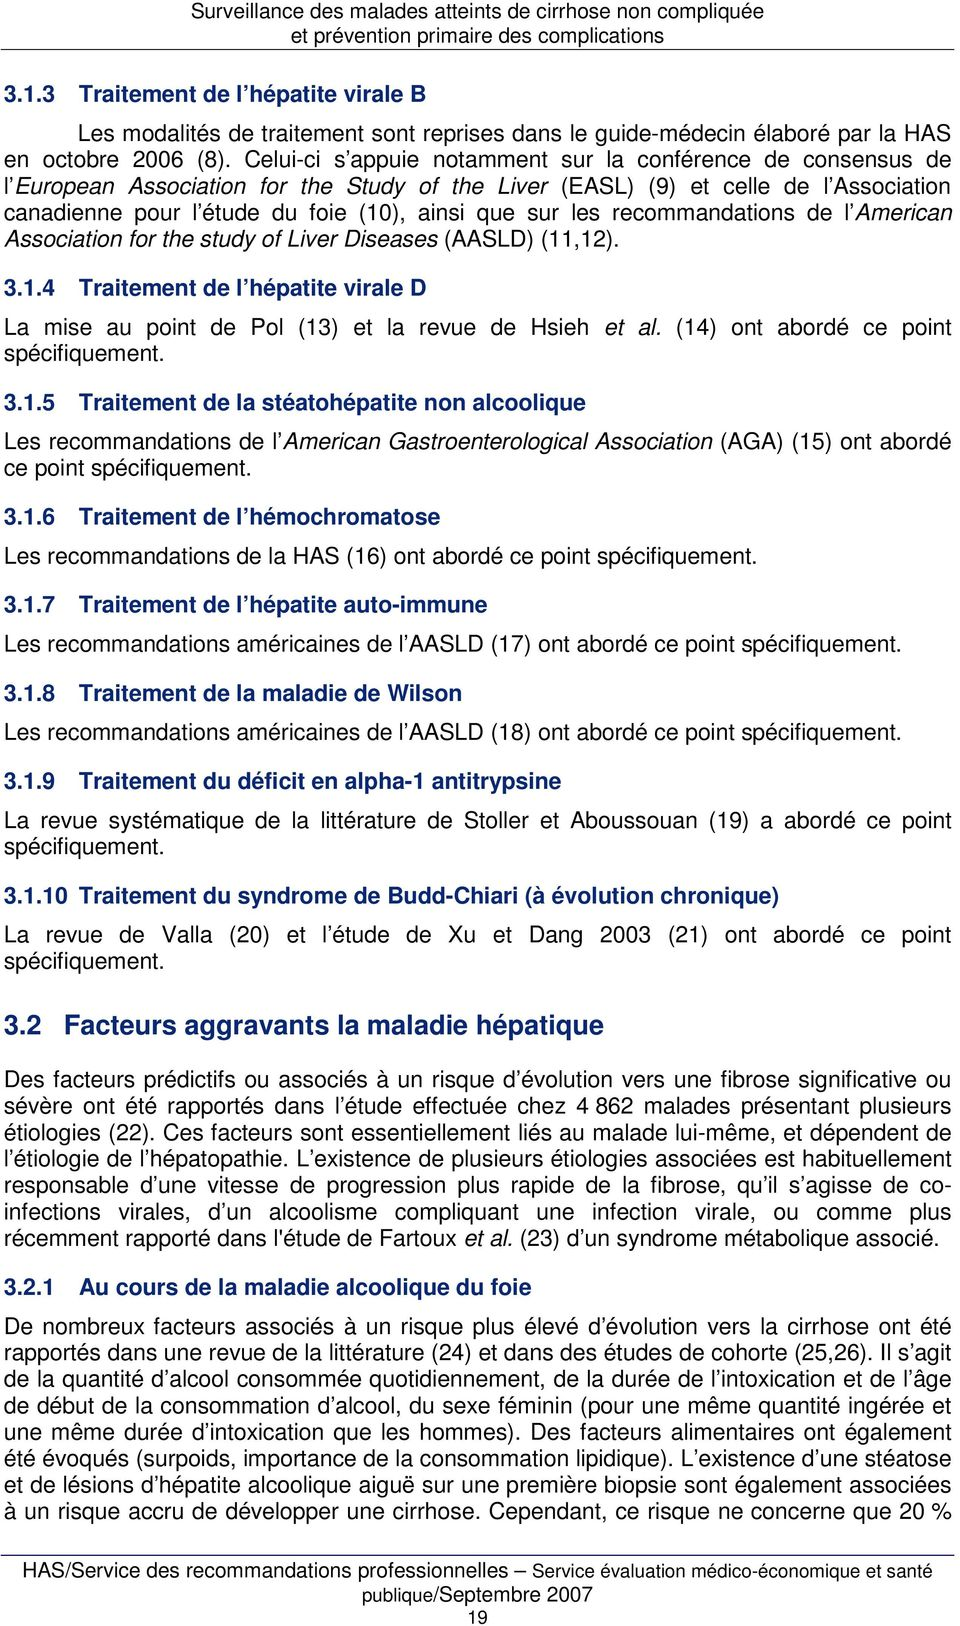 sur les recommandations de l American Association for the study of Liver Diseases (AASLD) (11,12). 3.1.4 Traitement de l hépatite virale D La mise au point de Pol (13) et la revue de Hsieh et al.